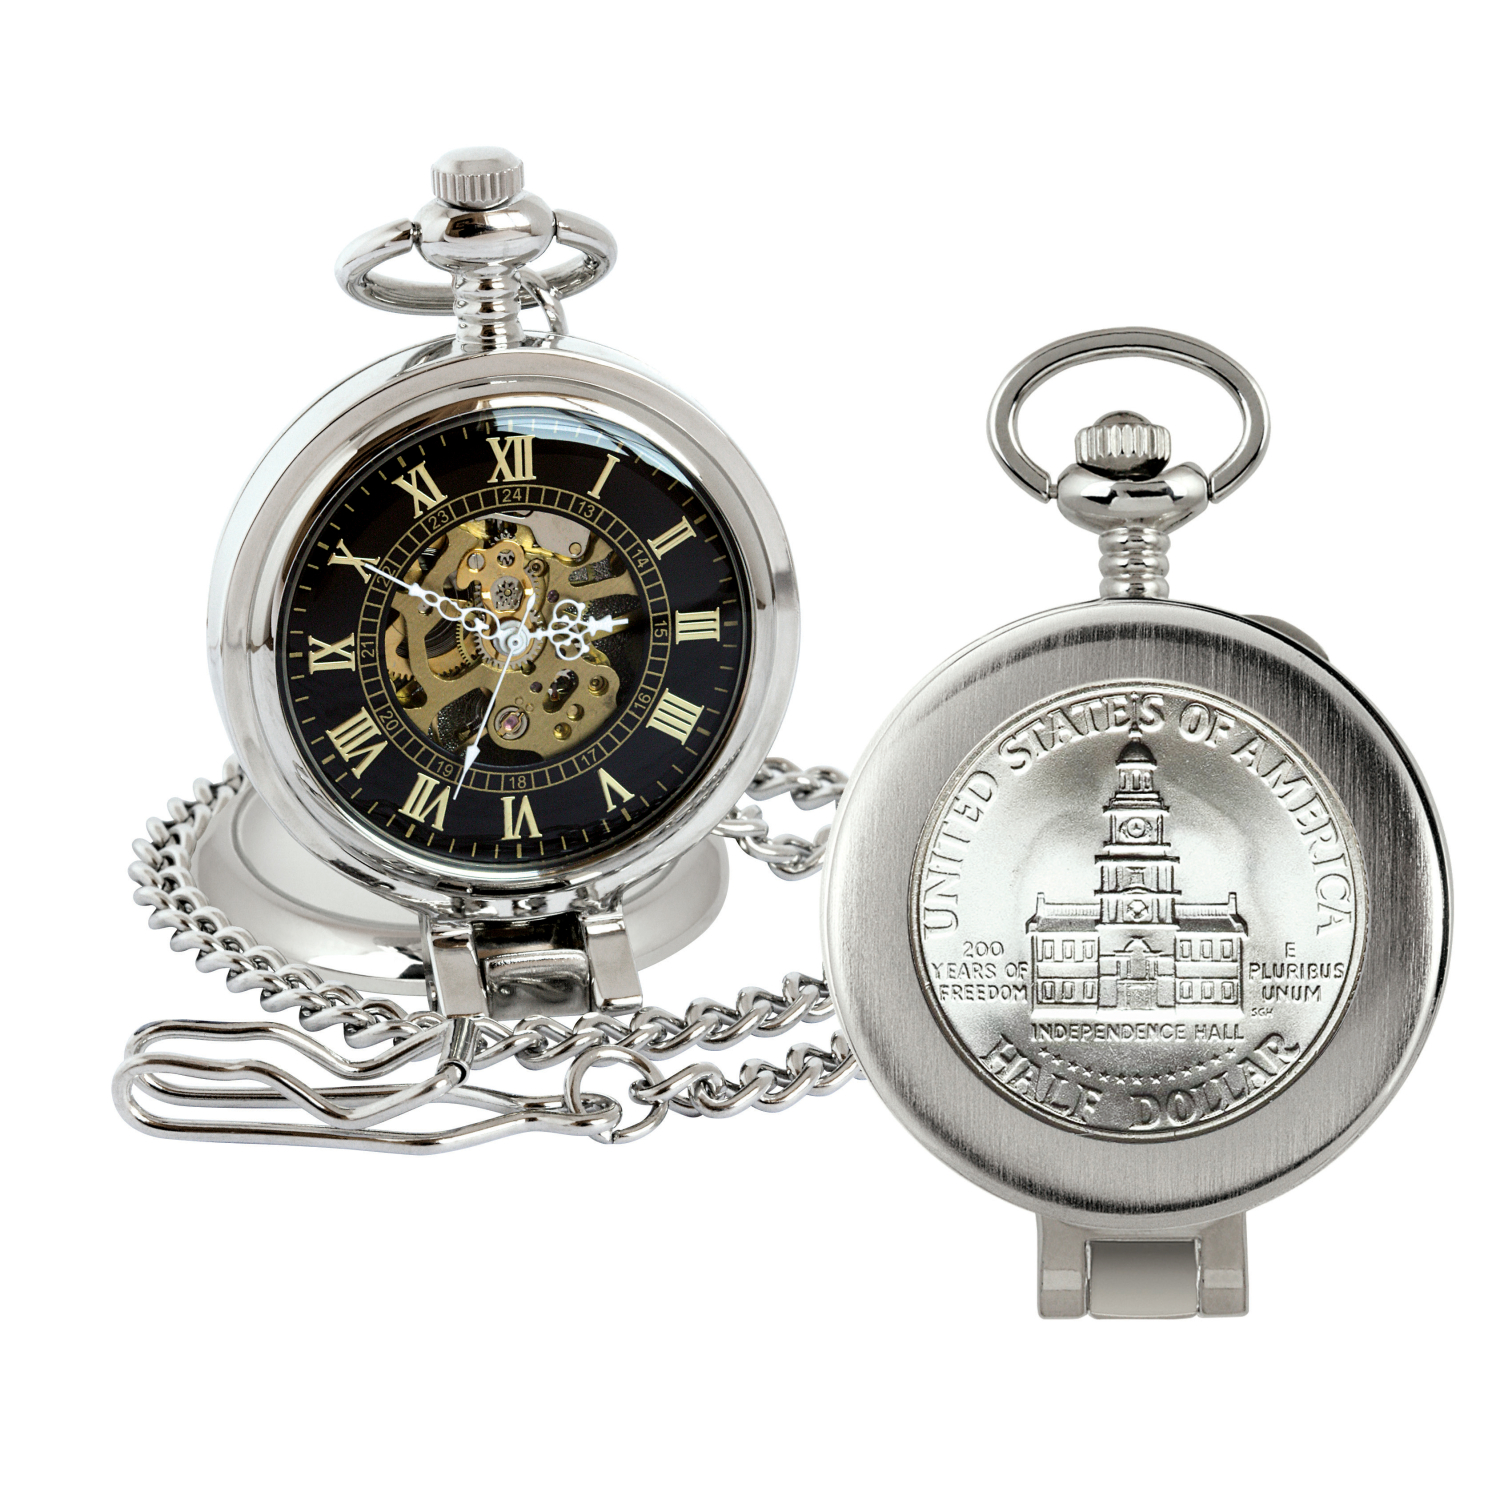 Jfk Bicentennial Half Dollar Coin Pocket Watch With Skeleton Movement - Magnifying Glass - Black Dial With Gold Roman Numerals